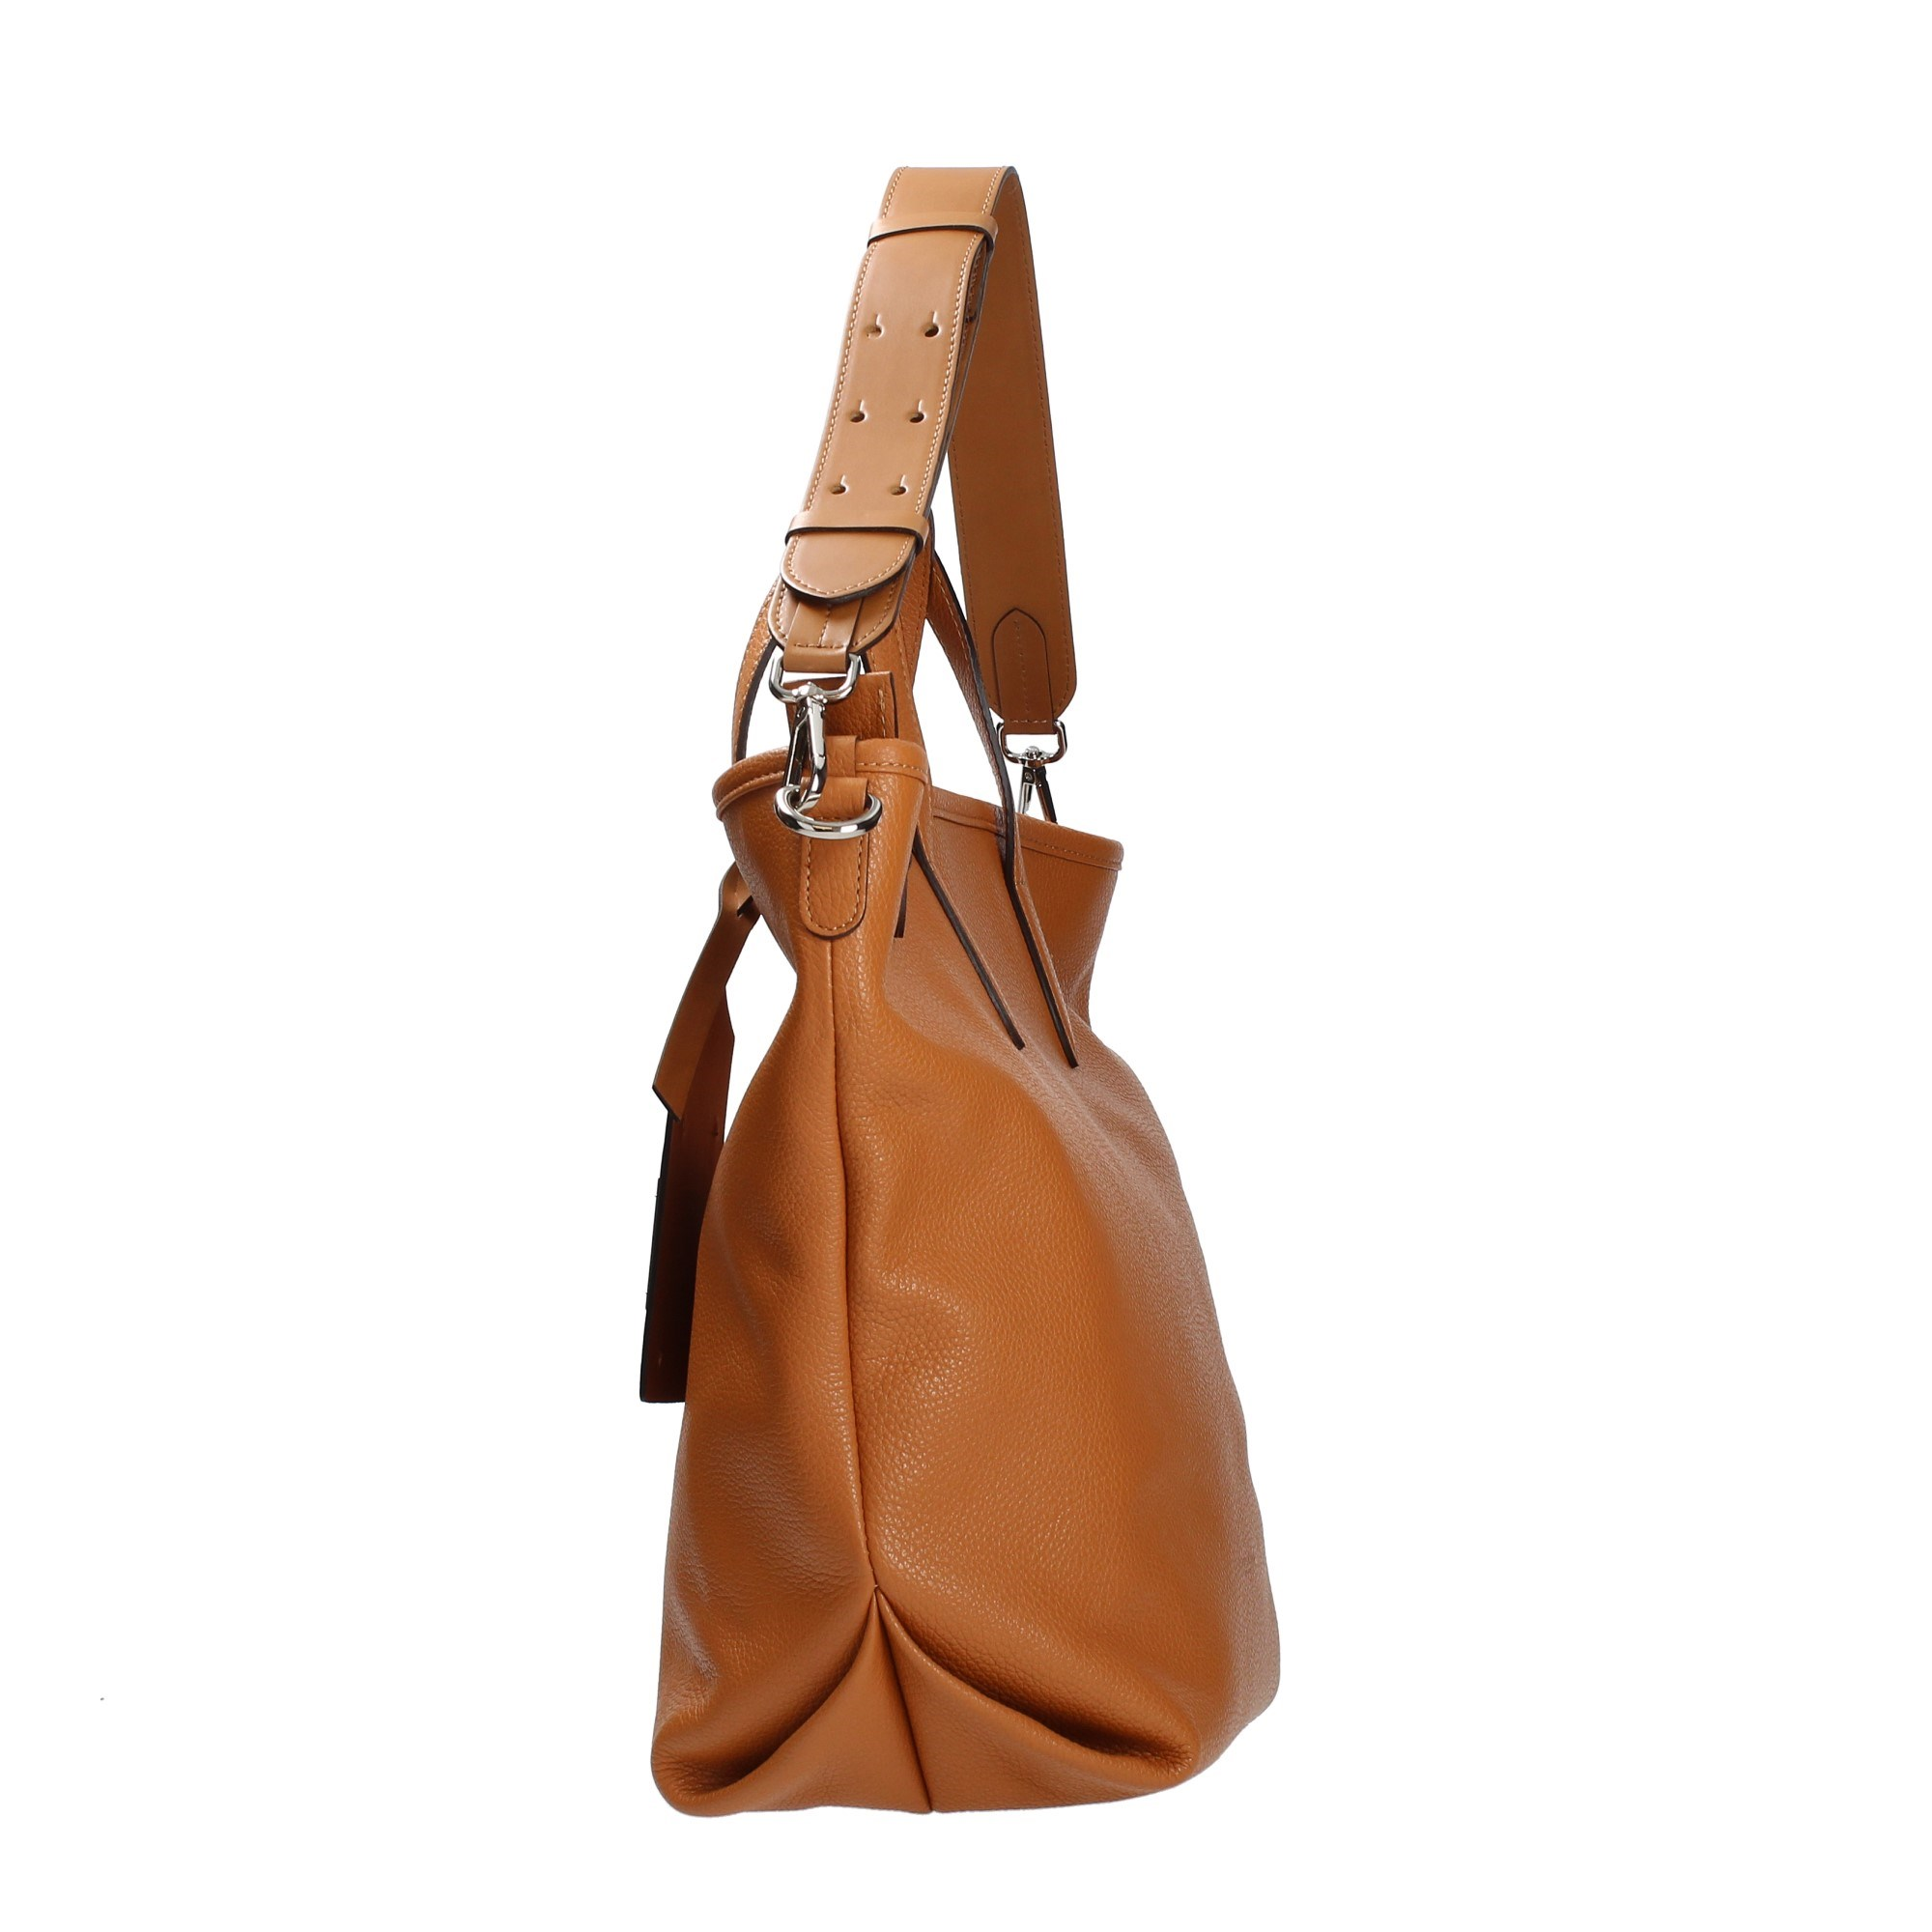 Gianni Chiarini Accessories Women Shoulder Bags Orange BS8602 OLX